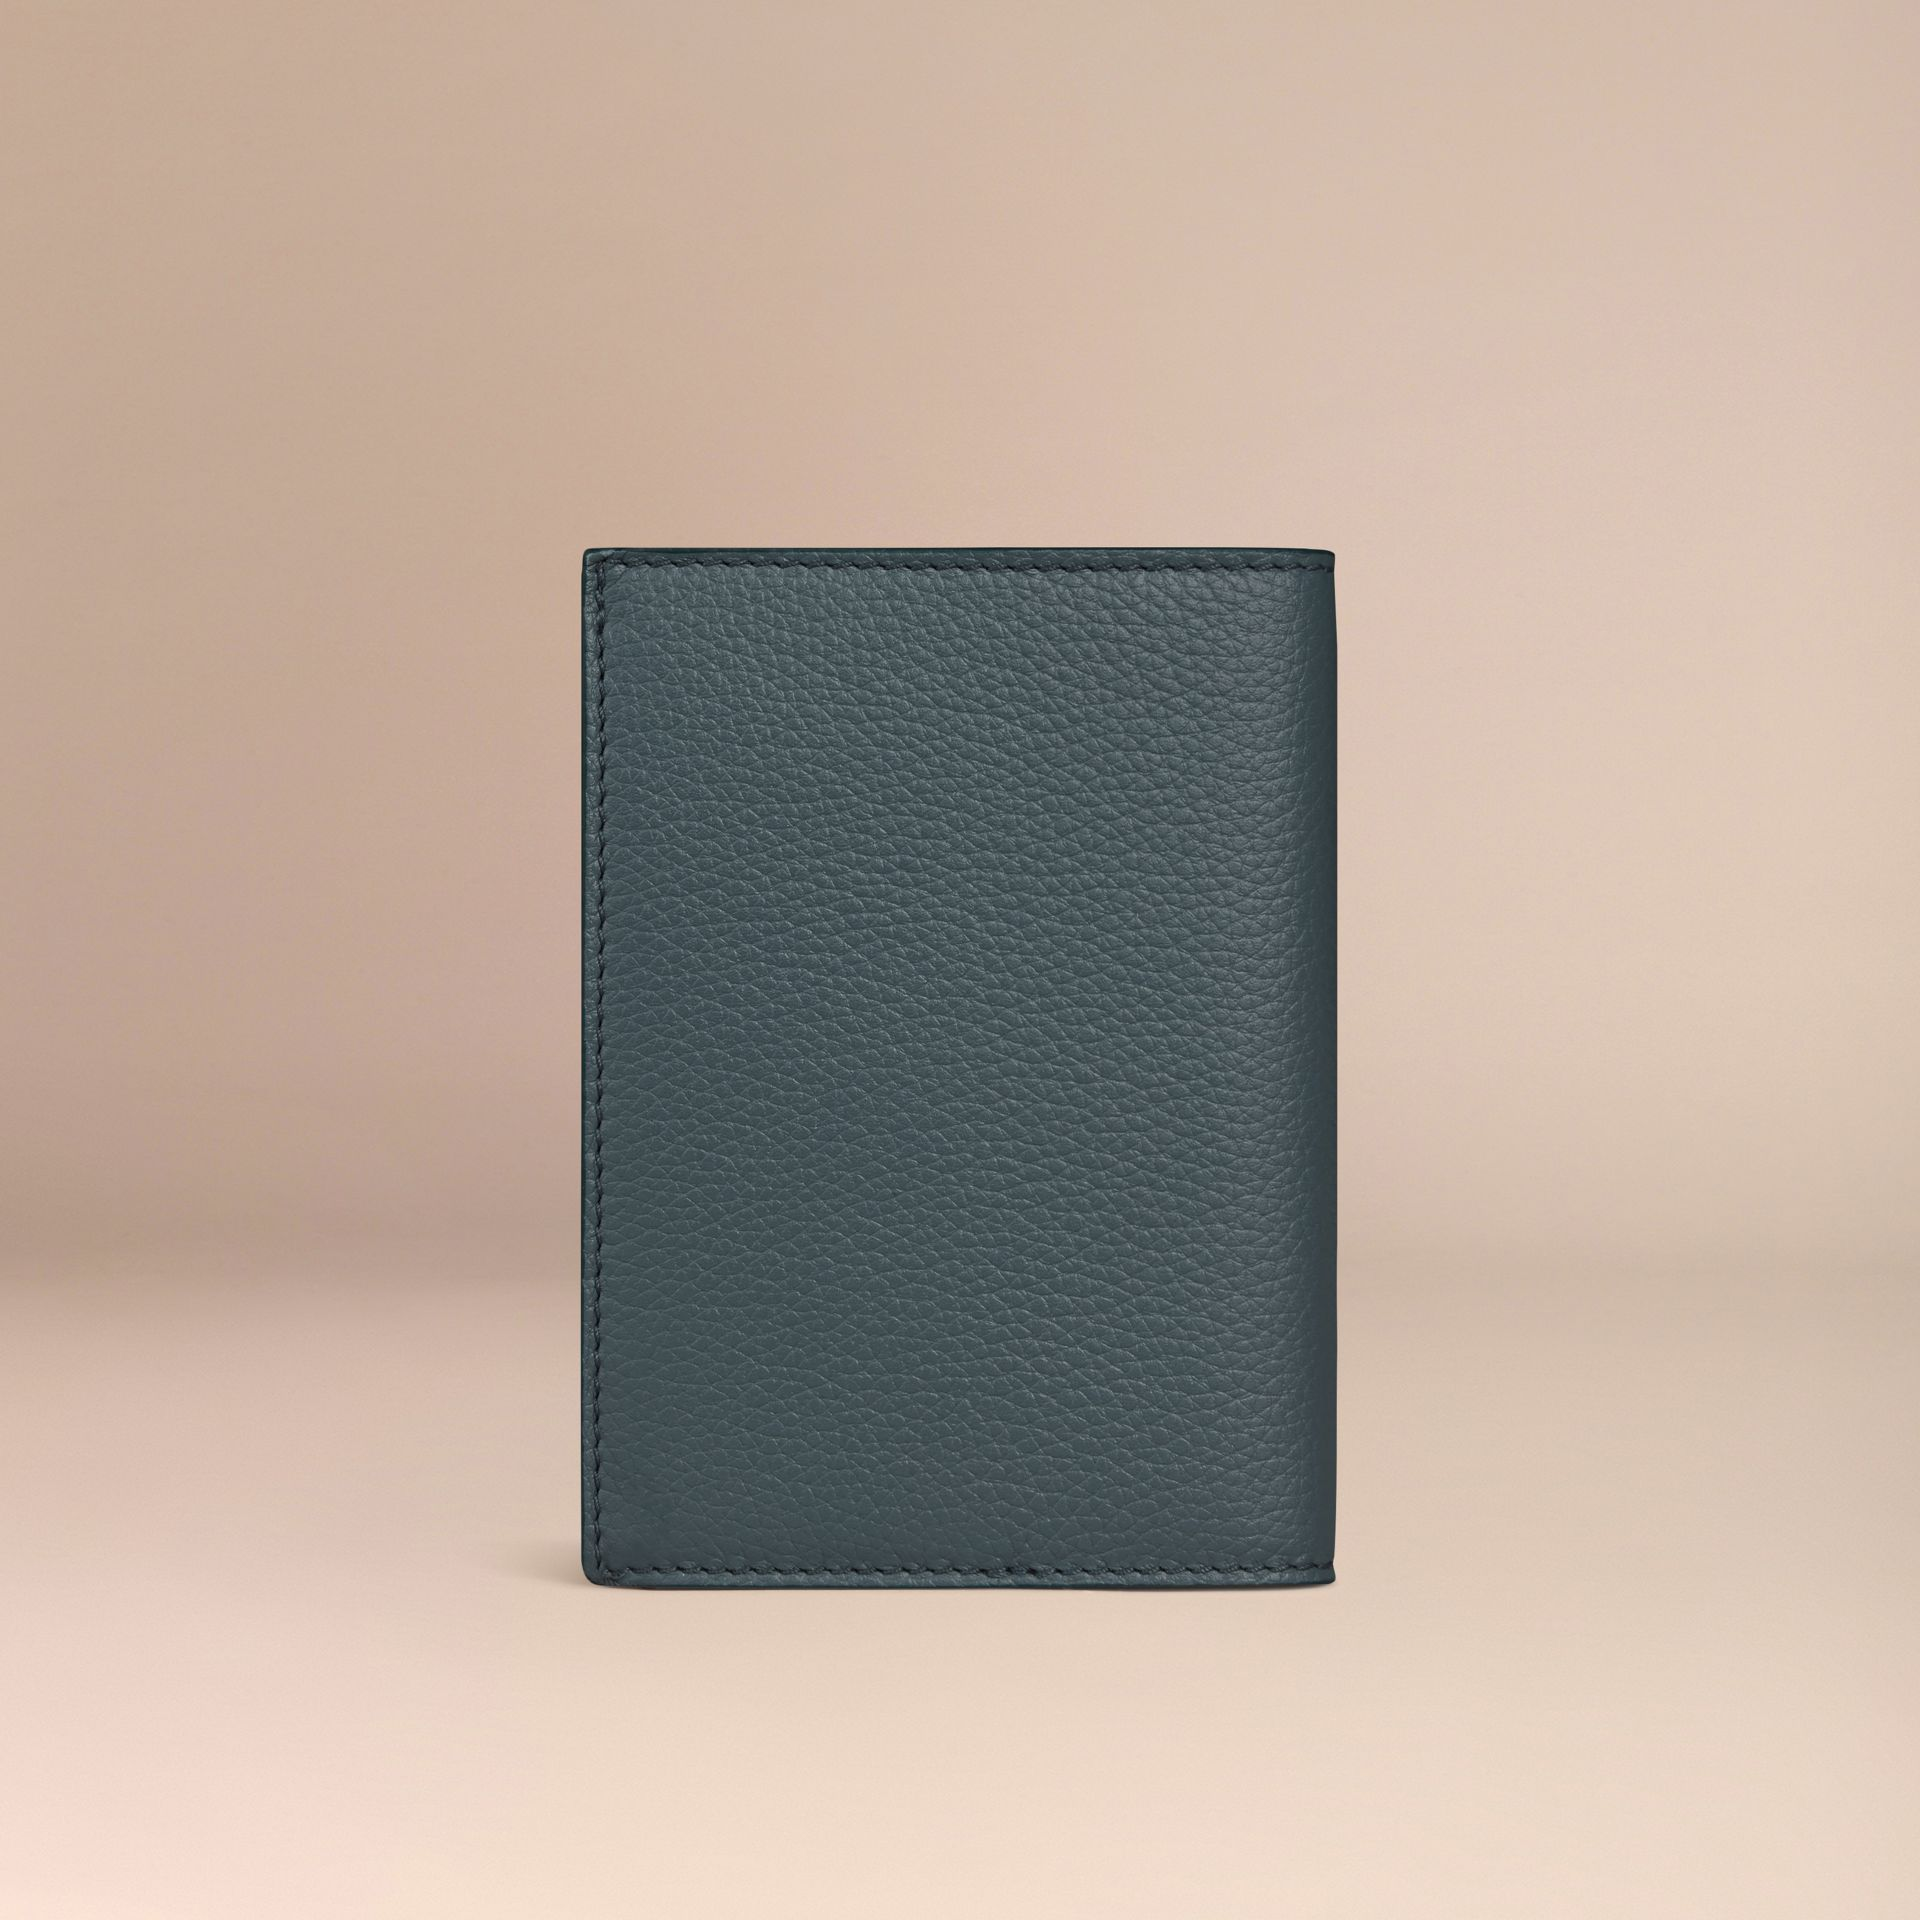 Grainy Leather Passport Cover in Dusty Teal | Burberry United Kingdom - gallery image 3